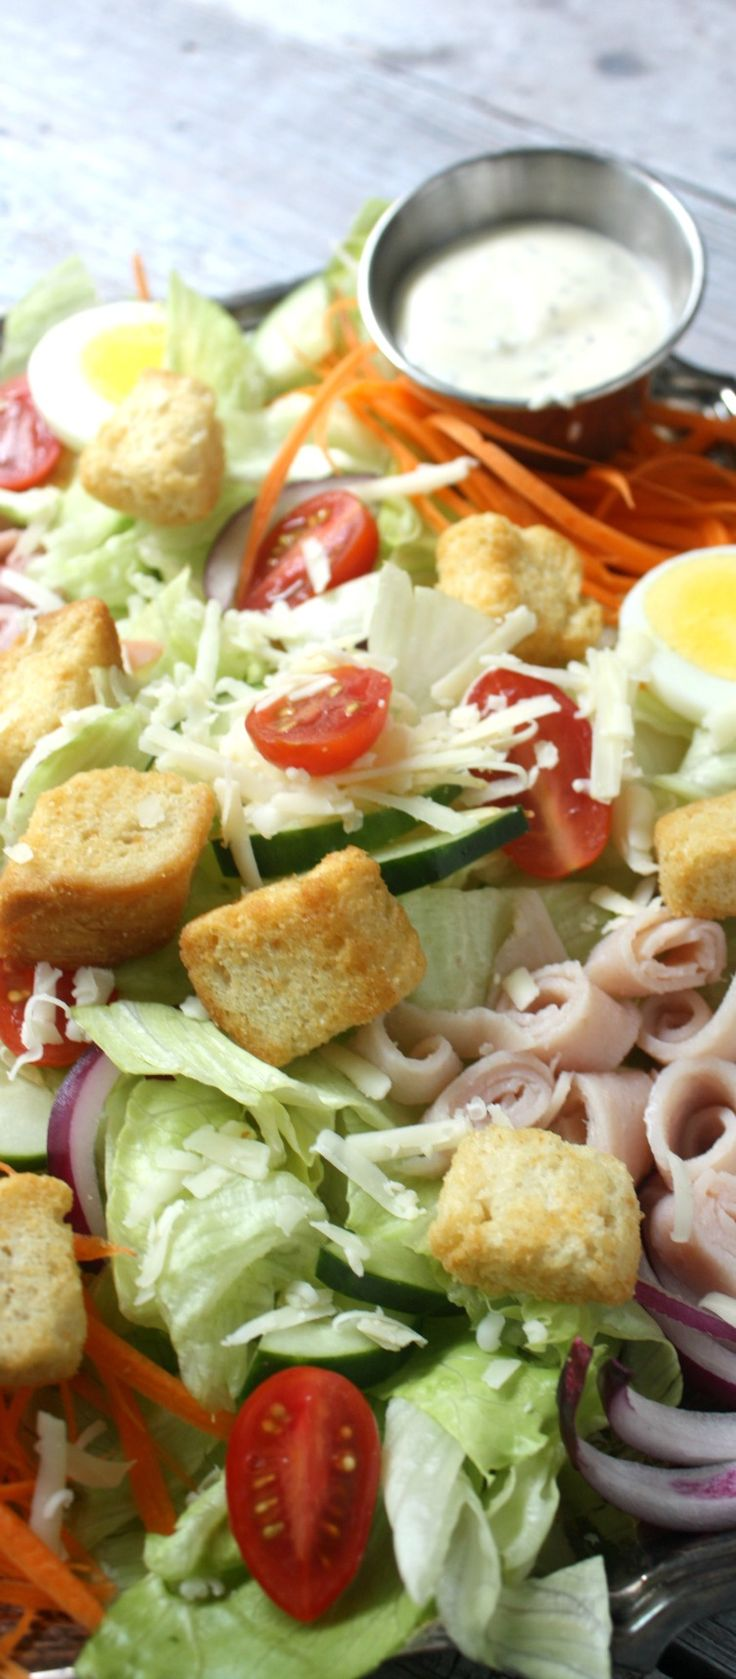 Chef's Salad is filled with crisp lettuce, fresh vegetables, deli meat and cheese. This entree sized Chef's salad is perfect for lunch or dinner.